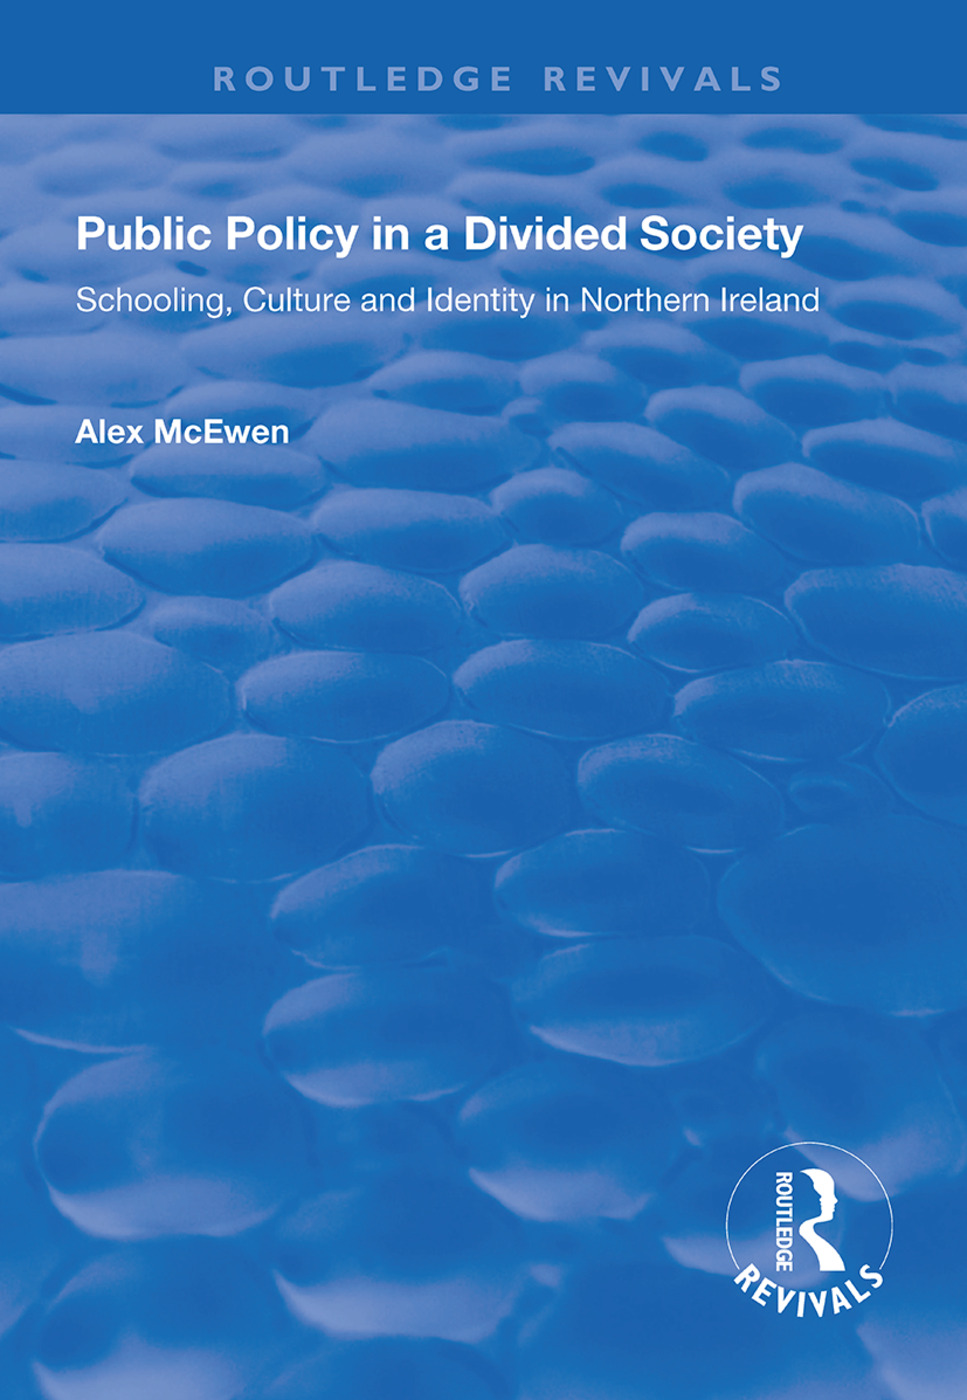 Public Policy in a Divided Society: Schooling, Culture and Identity in Northern Ireland book cover